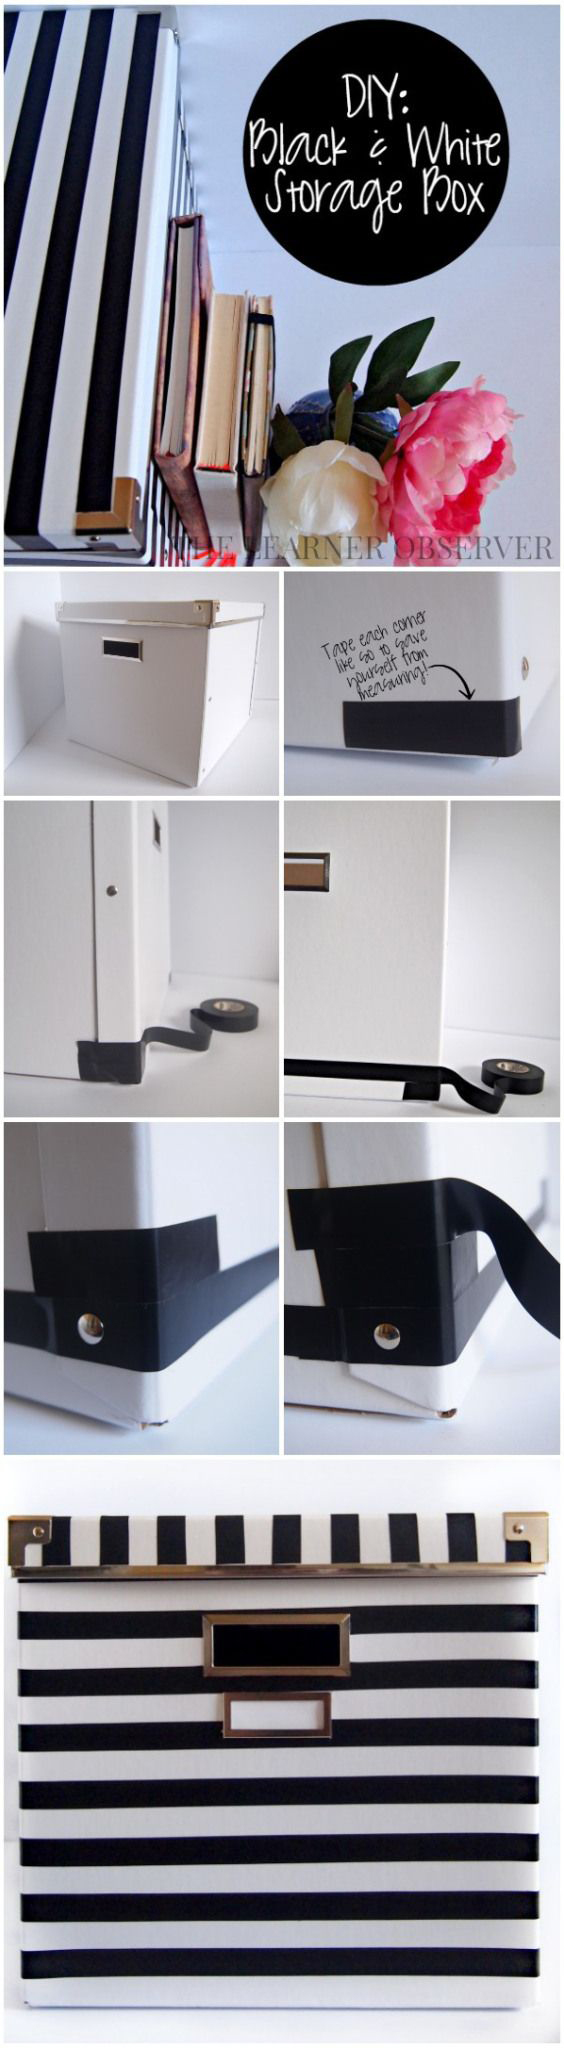 18 Brilliantly Ingenious Storage Ideas and Organizers to Declutter Your Room dorm room ideas usefuldiyprojects (3)